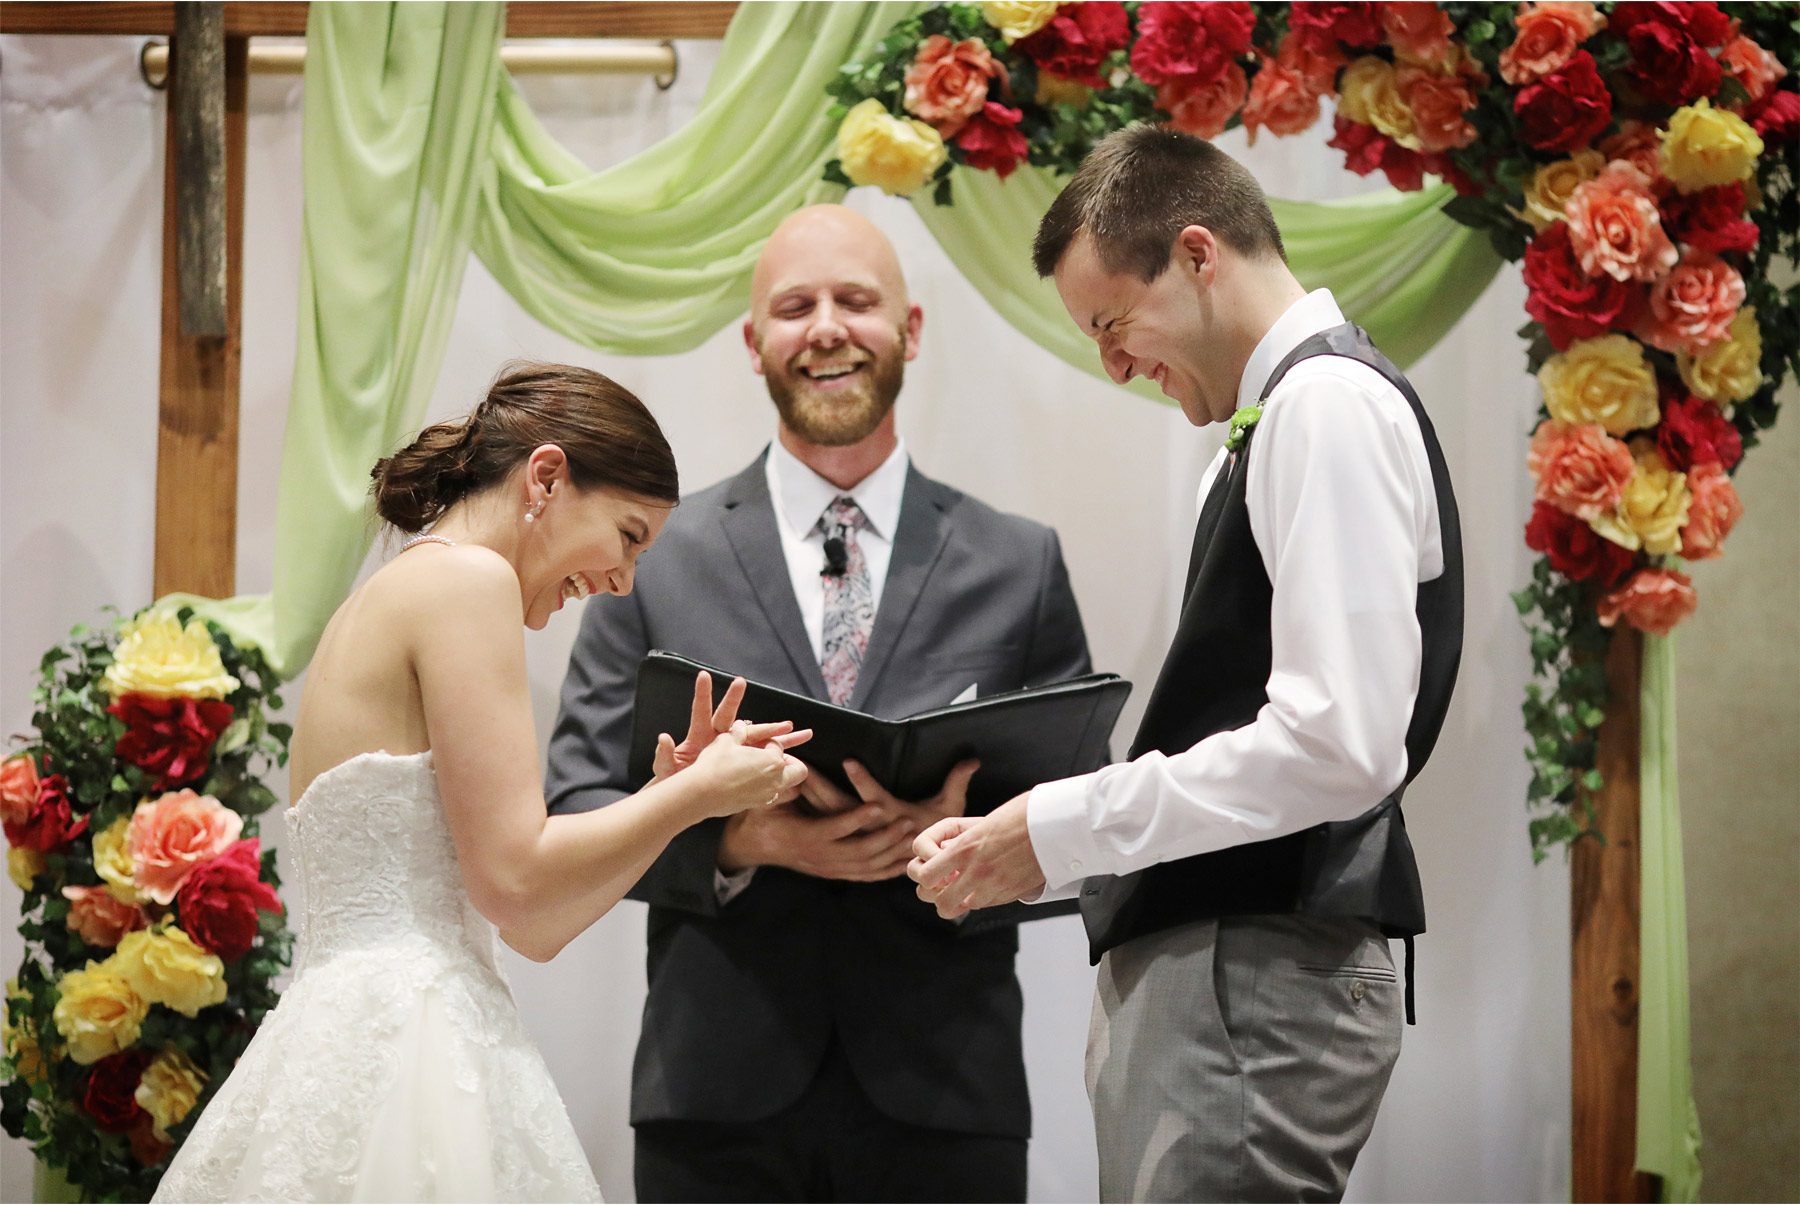 13-St-Paul-Minnesota-Wedding-Photography-by-Vick-Photography-Science-Museum-Ceremony-Stephanie-and-Scott.jpg